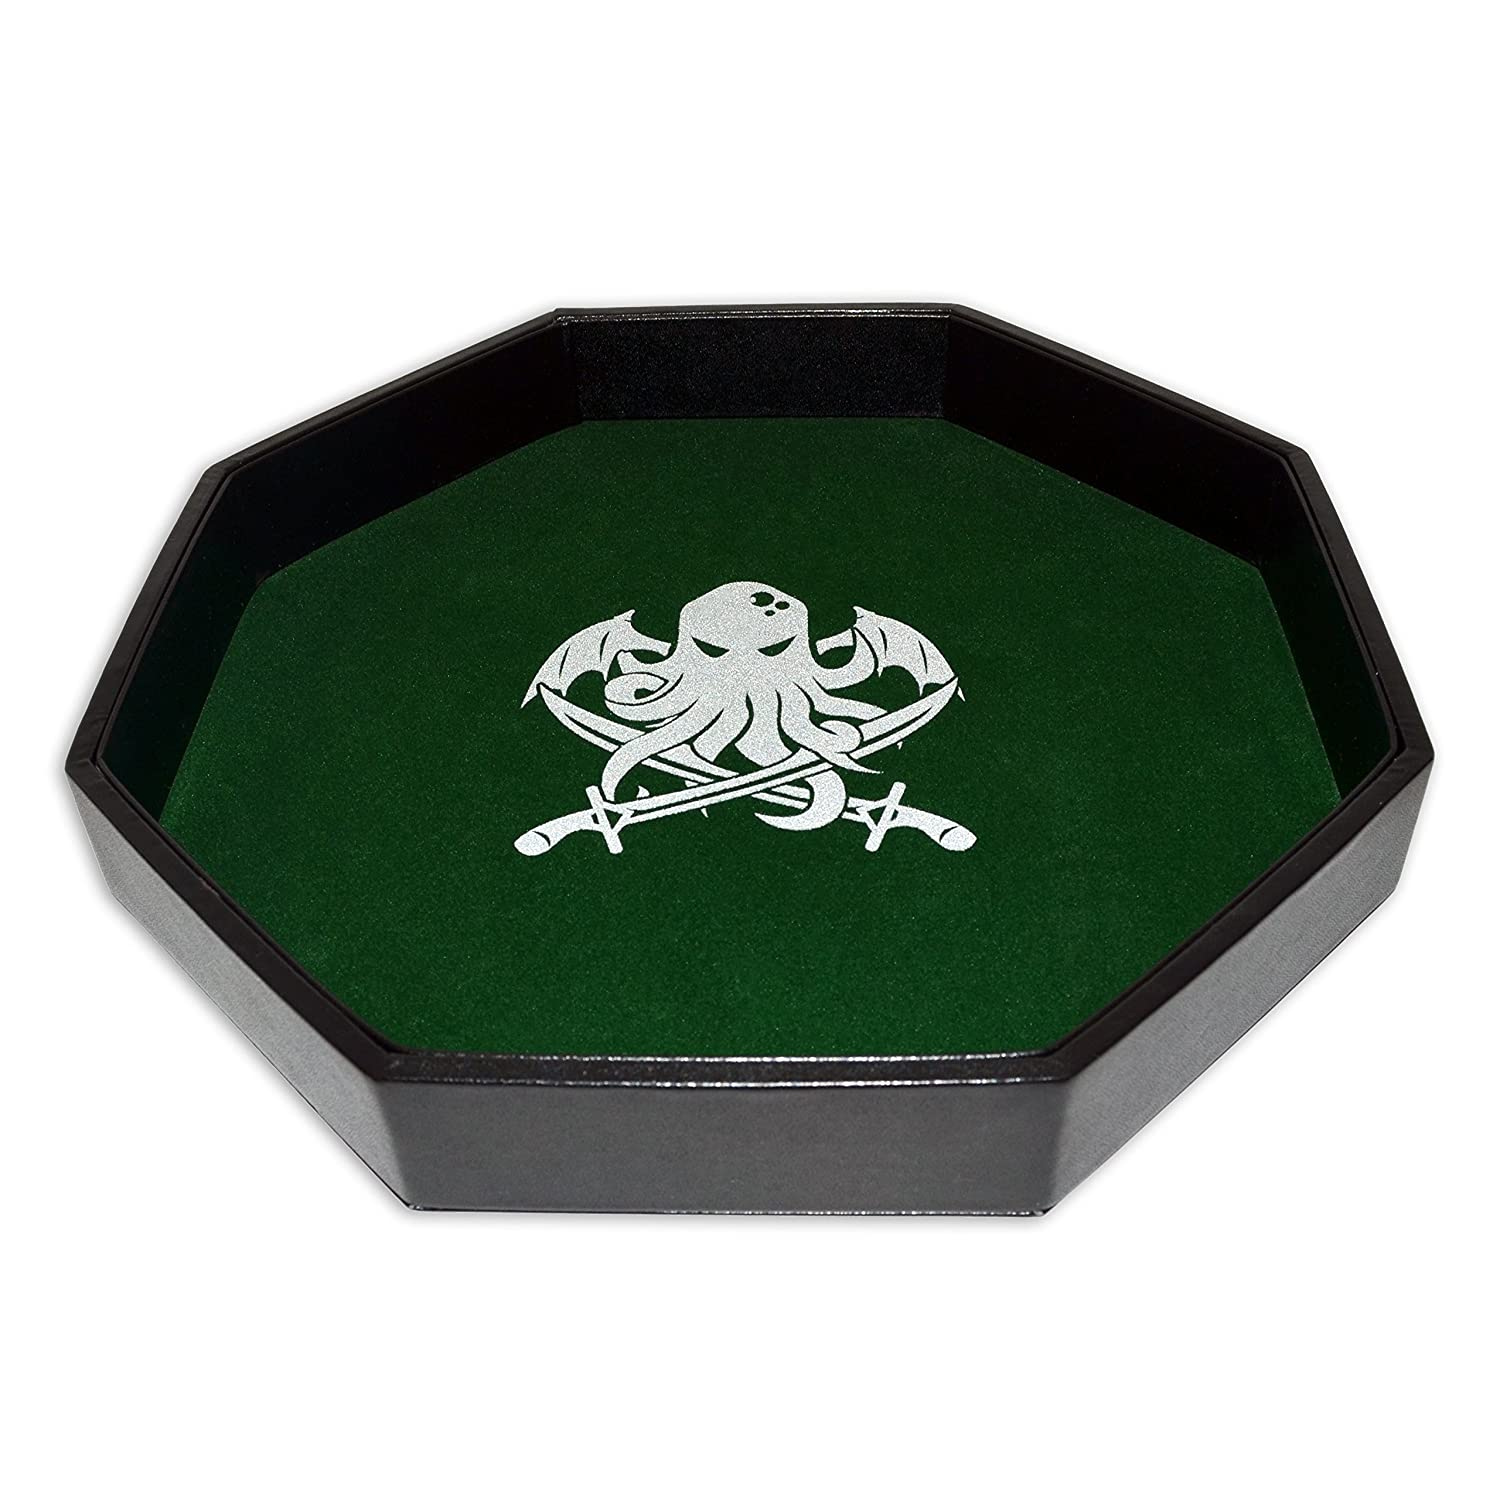 "Dice Tray - 11.5"" Octagon - Cthulhu's Lair - Green - Limited Edition - For Any Dice or Board Games  Tabletop RPGs like D&D (DnD)  Pathfinder Roleplaying Game Darksilver Forge"